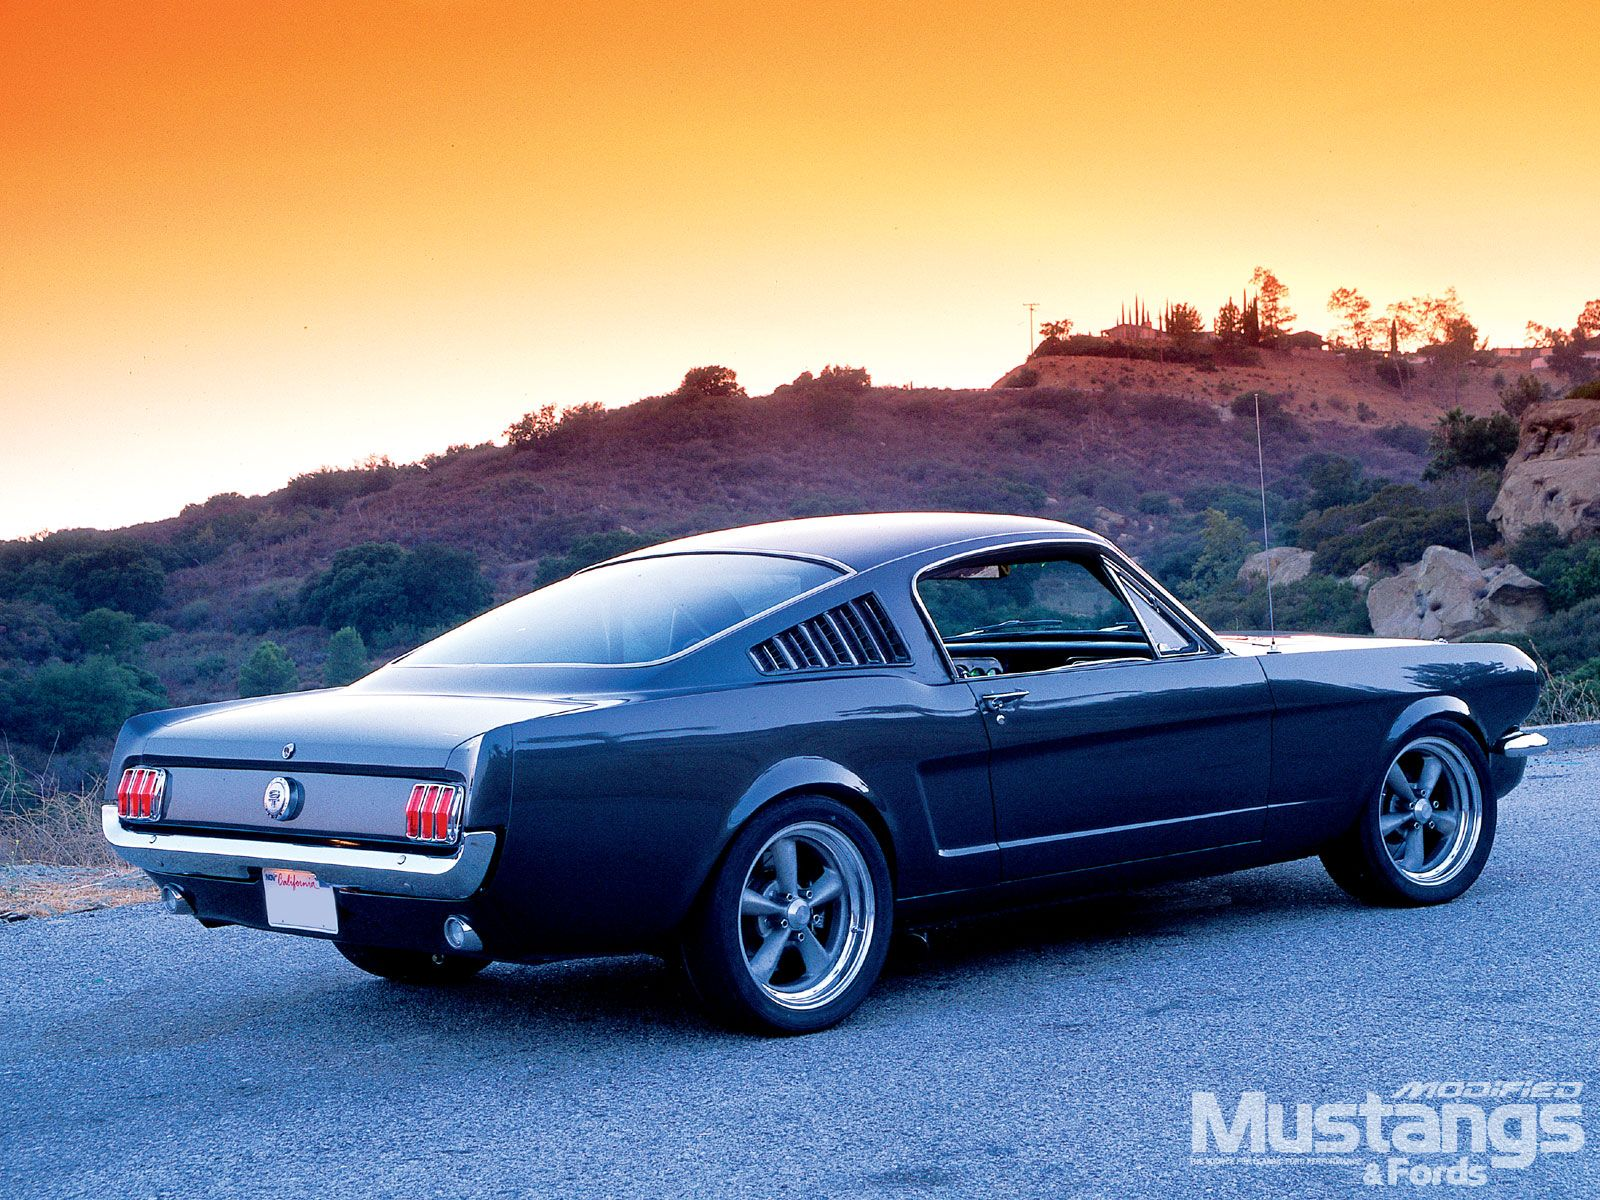 Ford Mustang 1965 Gt Fastback God Issues Celebrity 1964 Inspired Style